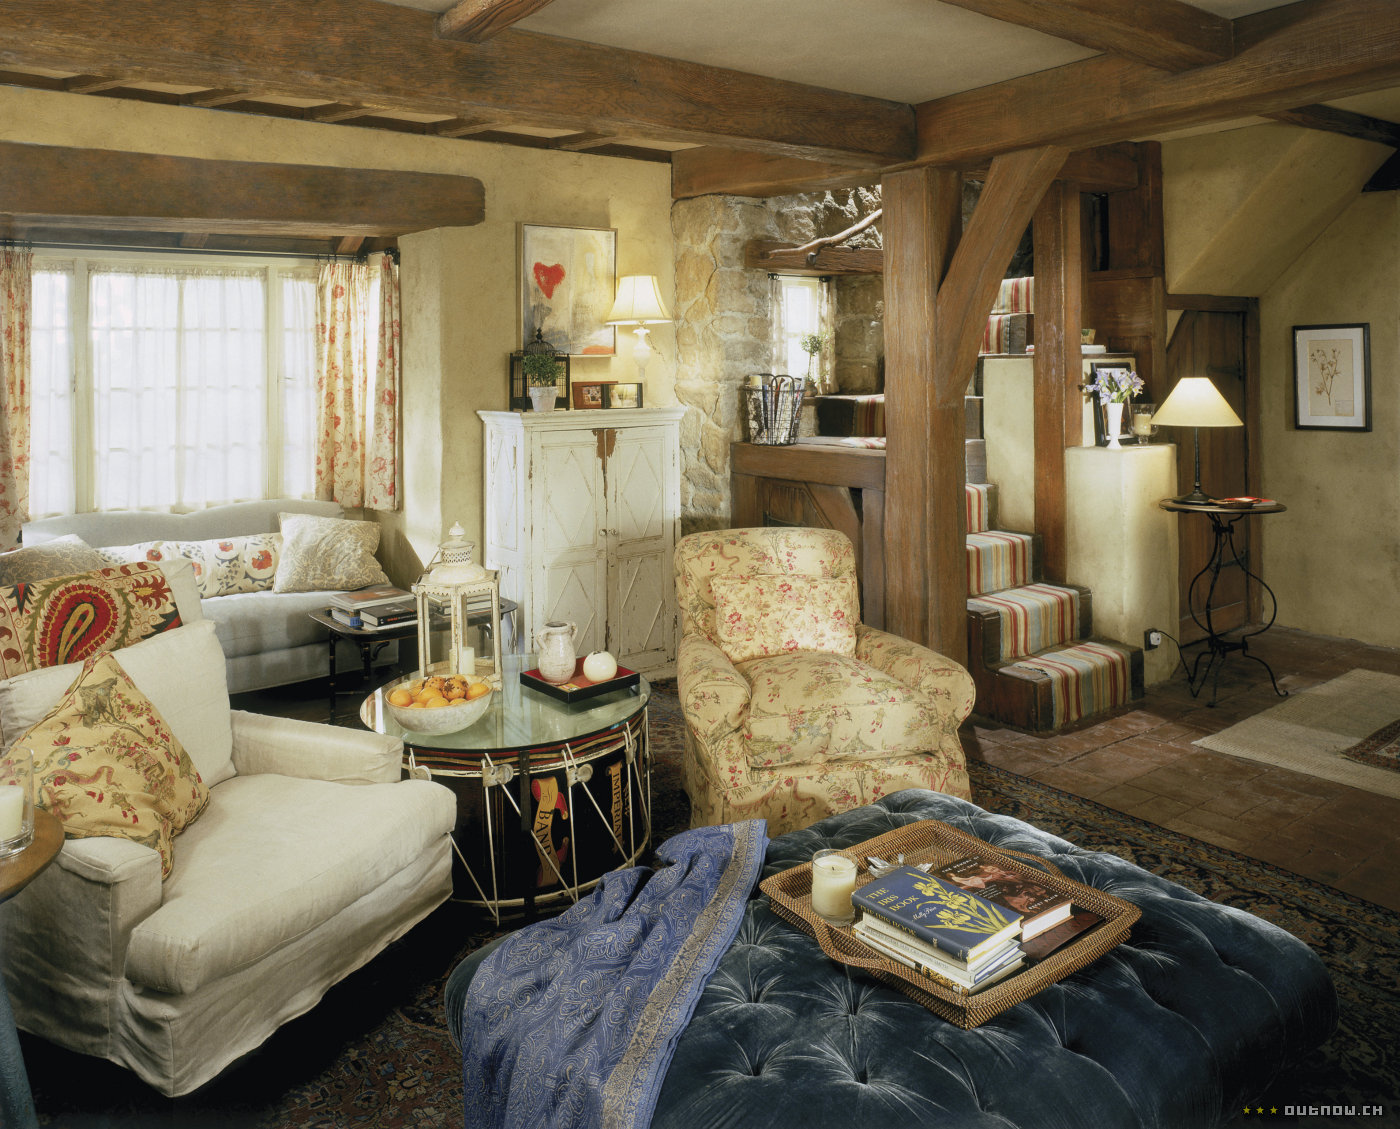 A Joyful Cottage: Living Large In Small Spaces